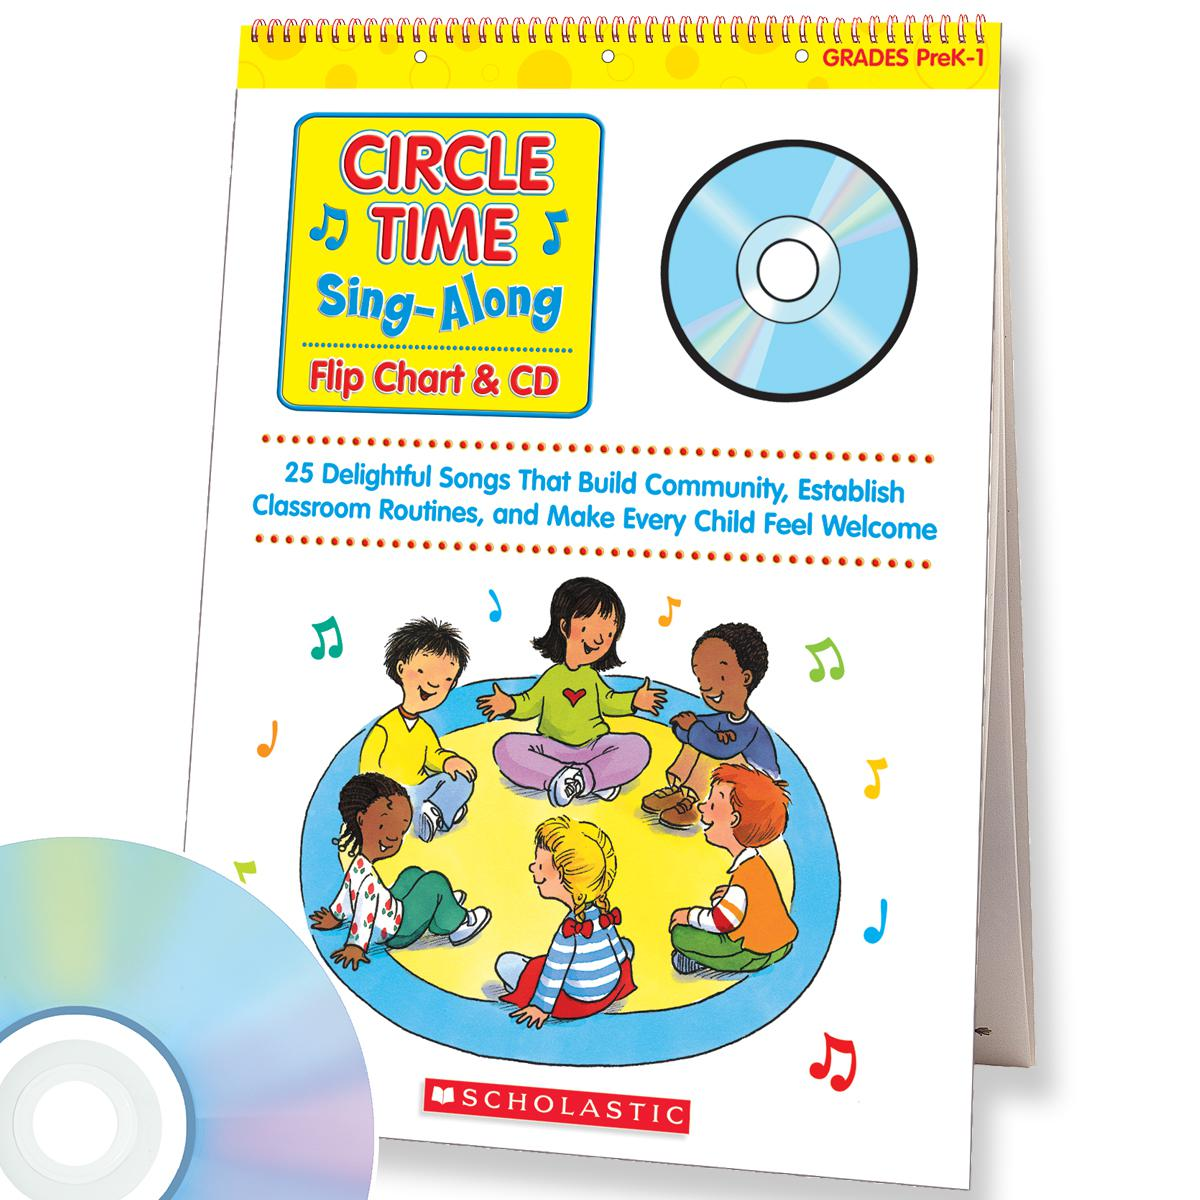 Circle Time Sing-Along Flip Chart & CD